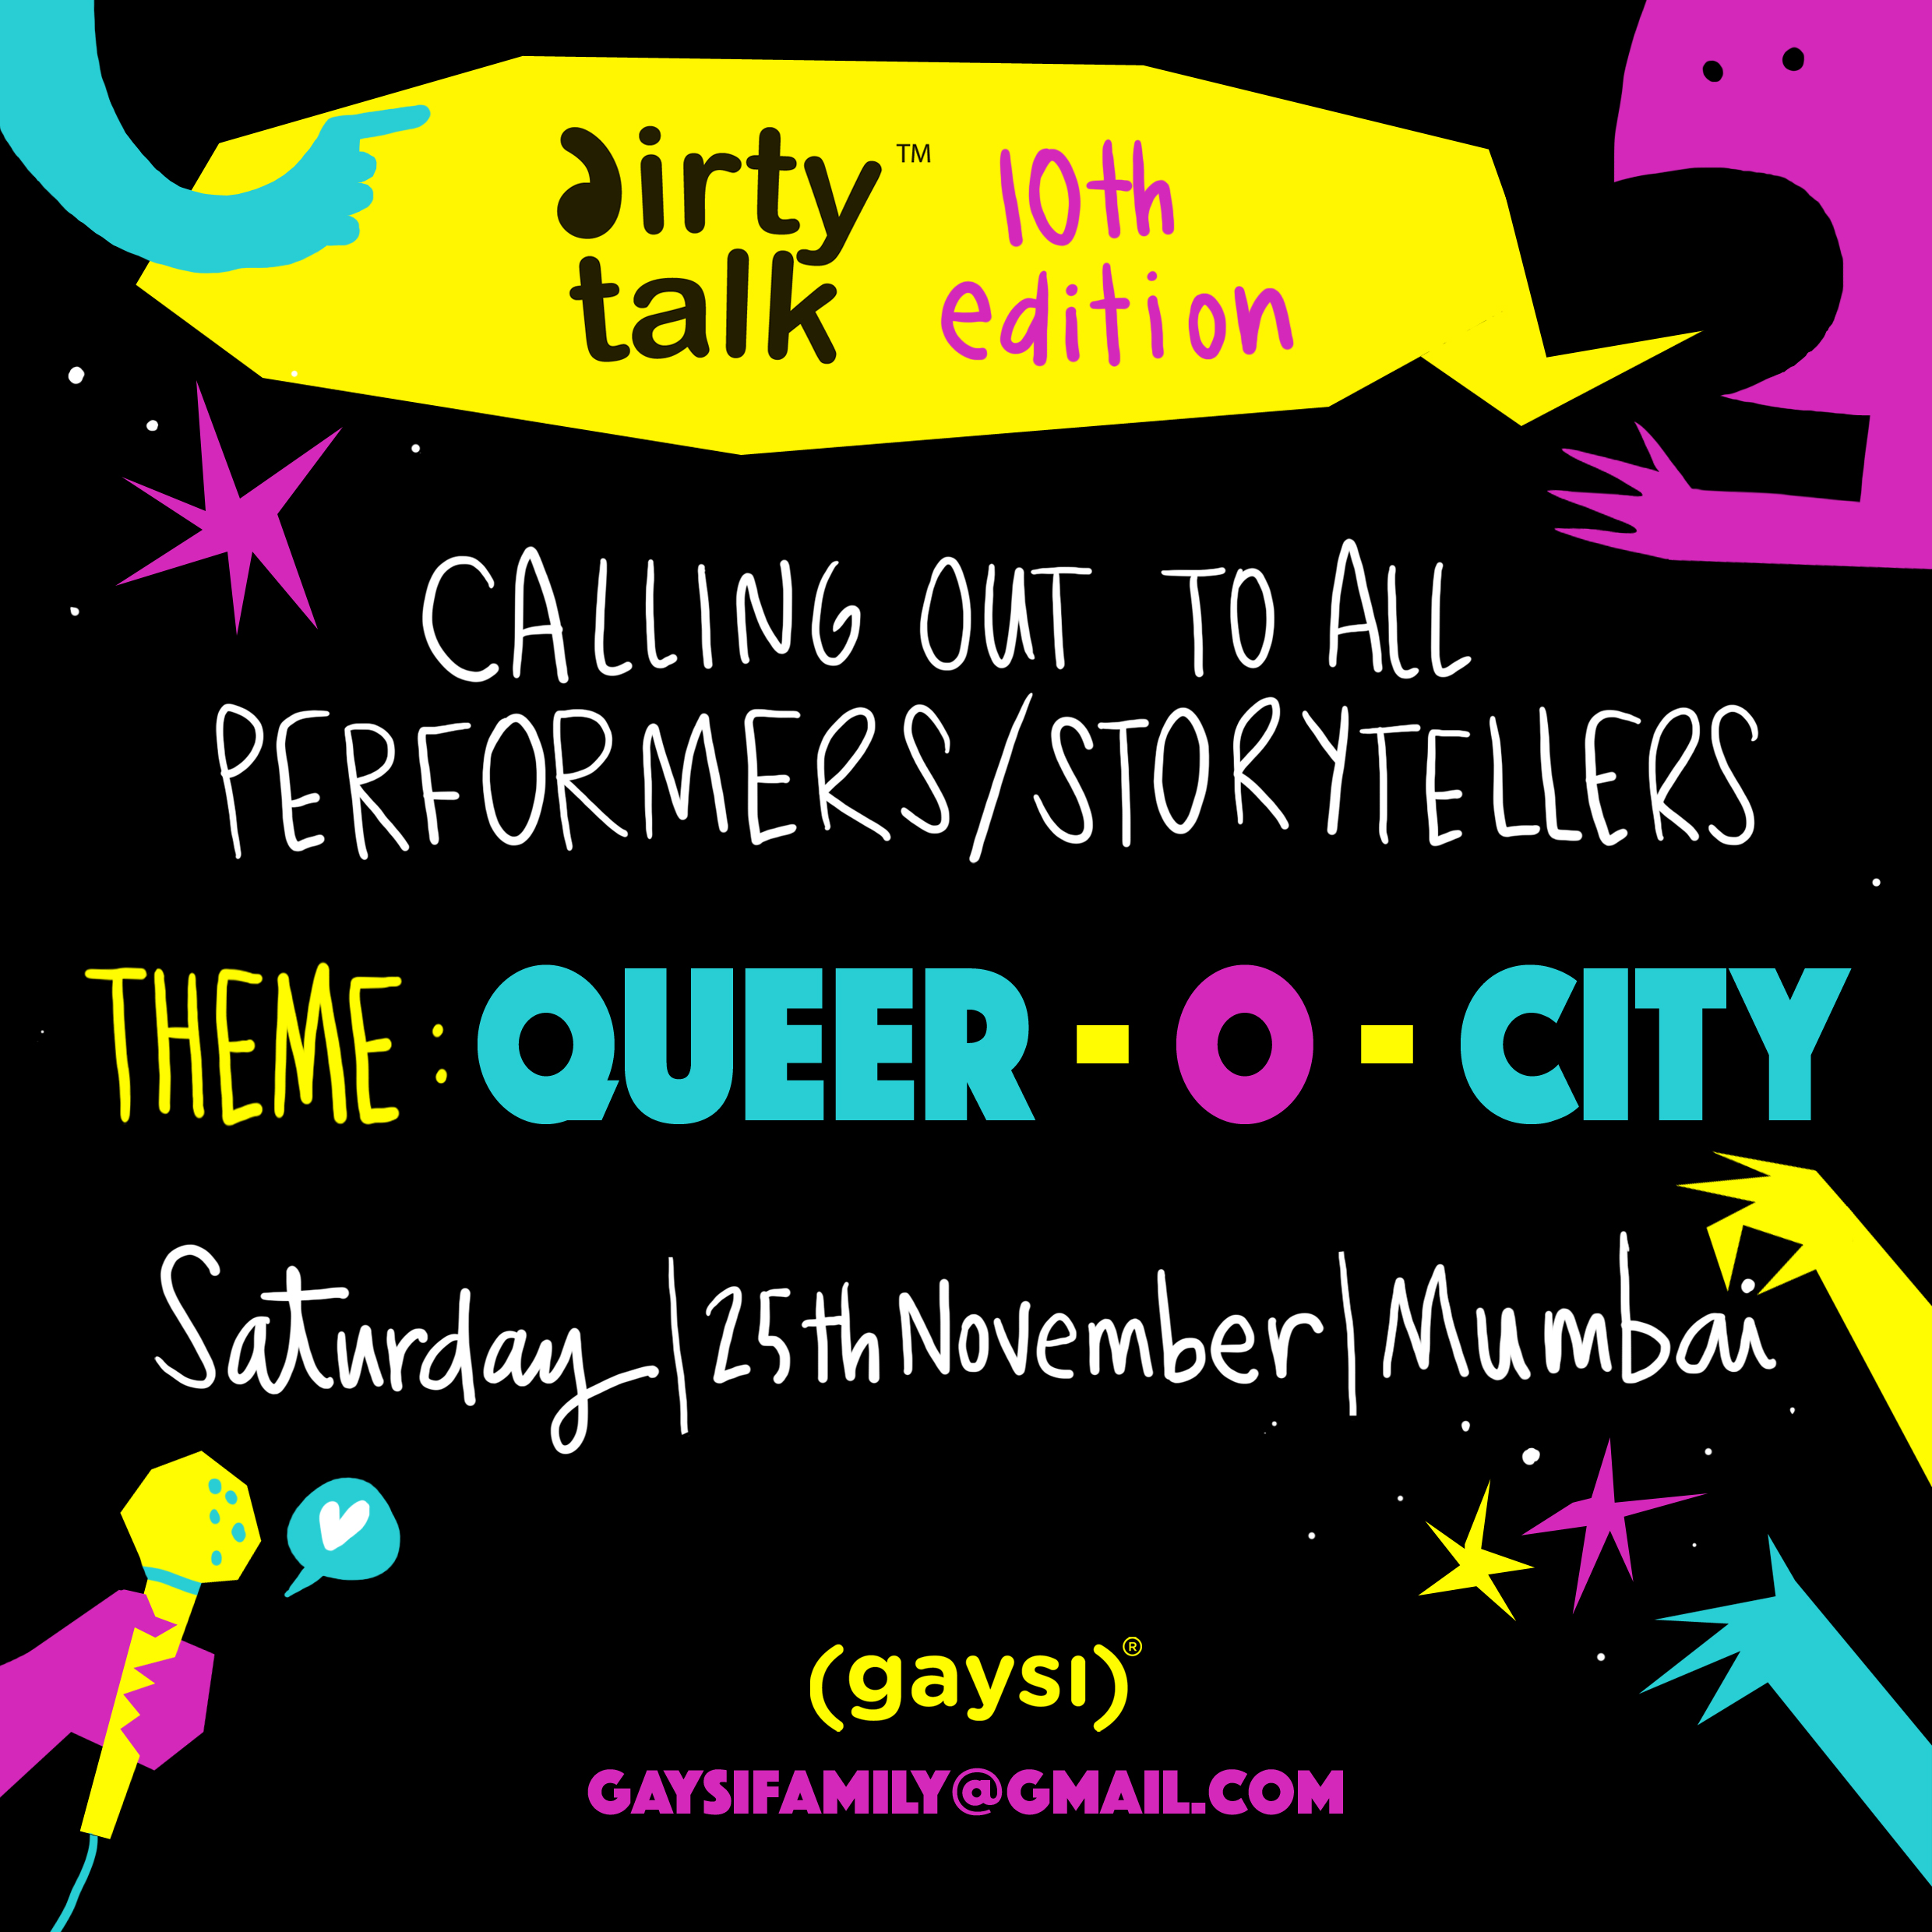 Queer-O-City: Dirty Talk Is Back With Its X-tra Special 10th Edition. Inviting Performers & Storytellers Now!